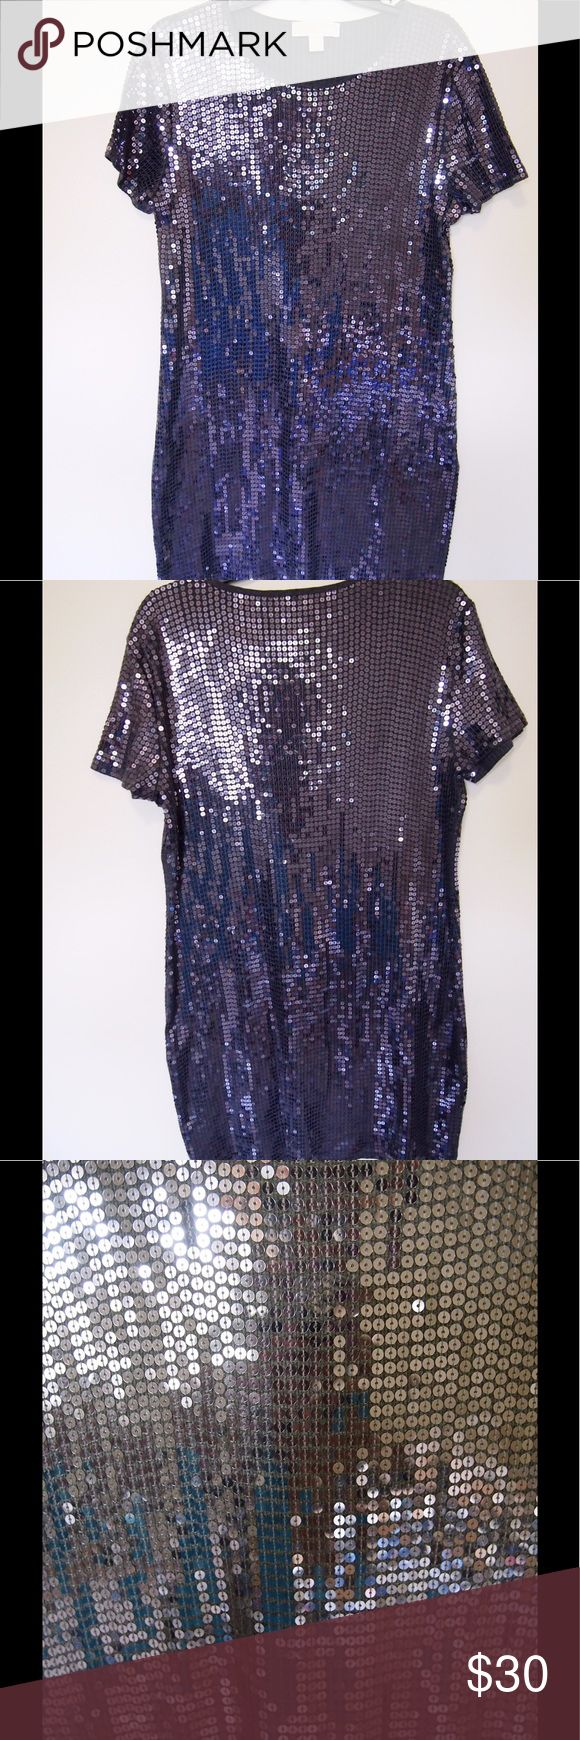 Michael Michael Kors Grey Sequin Dress Size XL This is a grey dress although it picks up a bit blue in the picture. Never the less this dress is in excellent condition. This dress has no flaws, all of the sequin are in tack. This dress comes slightly above the knee on most individuals and is 100% cotton. Please feel free to ask any questions regarding this beauty before purchasing. Thanks MICHAEL Michael Kors Dresses Midi